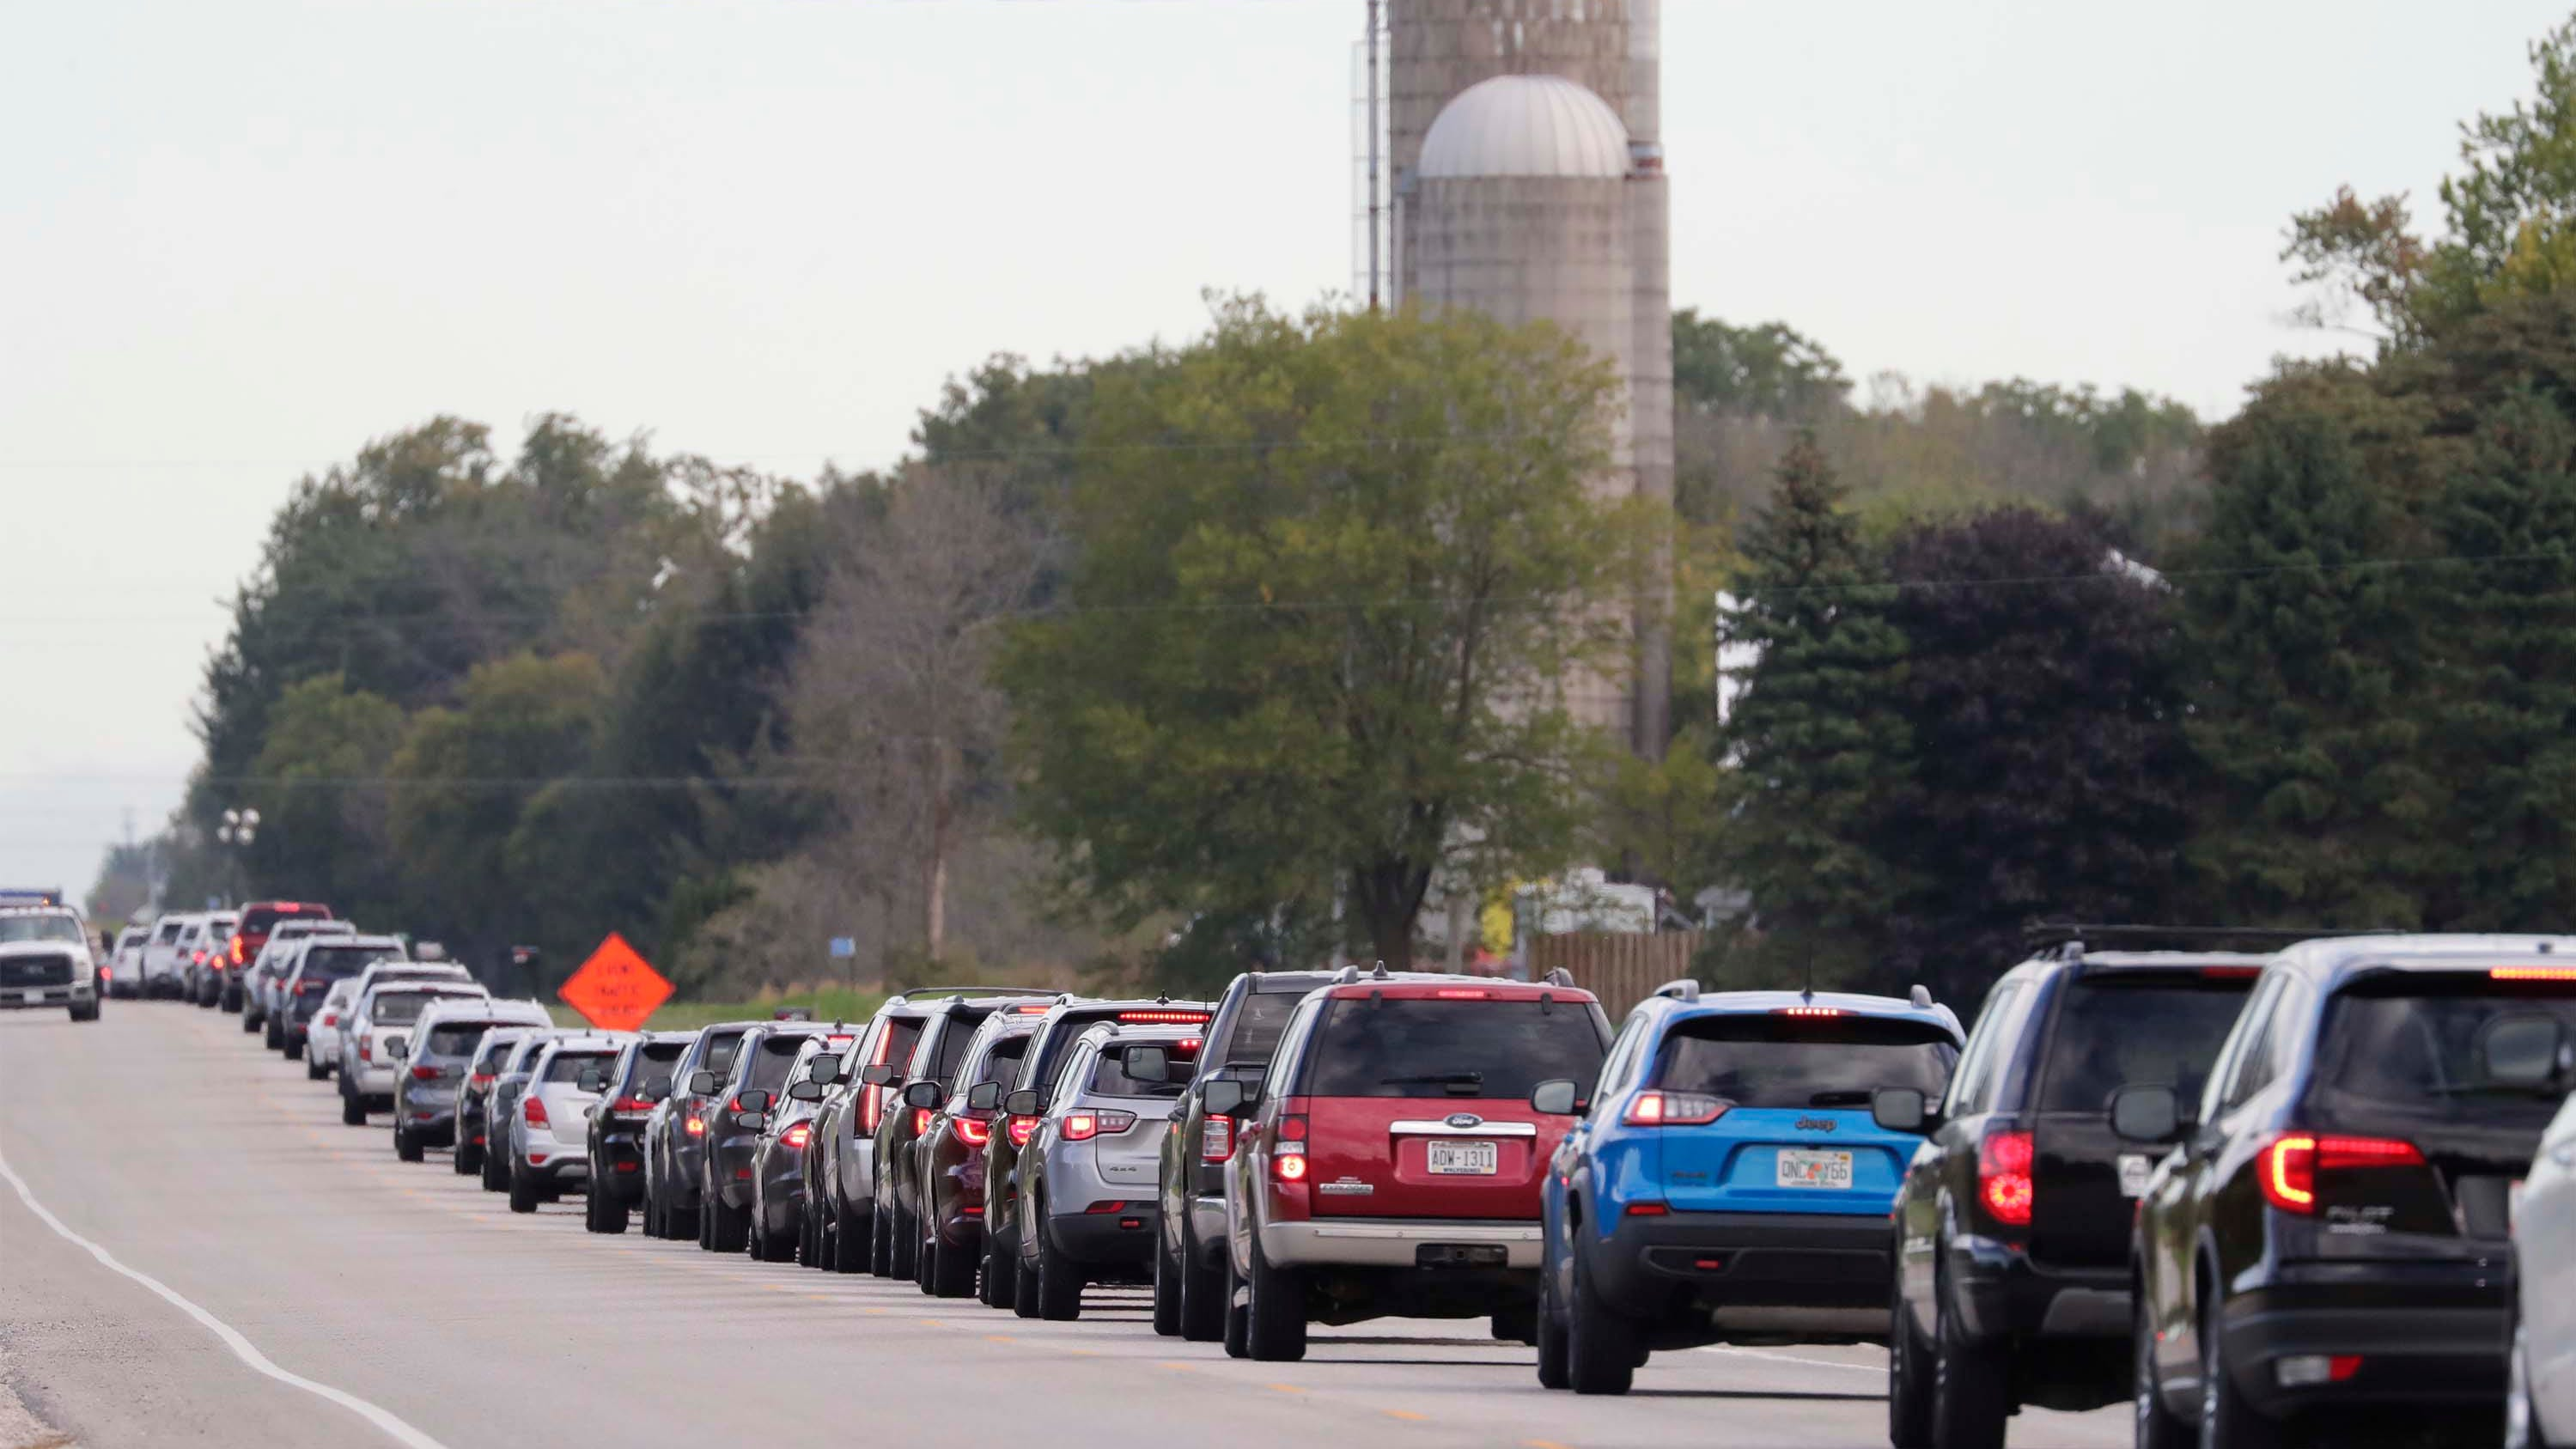 Non-Ryder Cup drivers should avoid I-43, Highway 42 as tournament brings 40,000-50,000 patrons to Sheboygan County - Milwaukee J